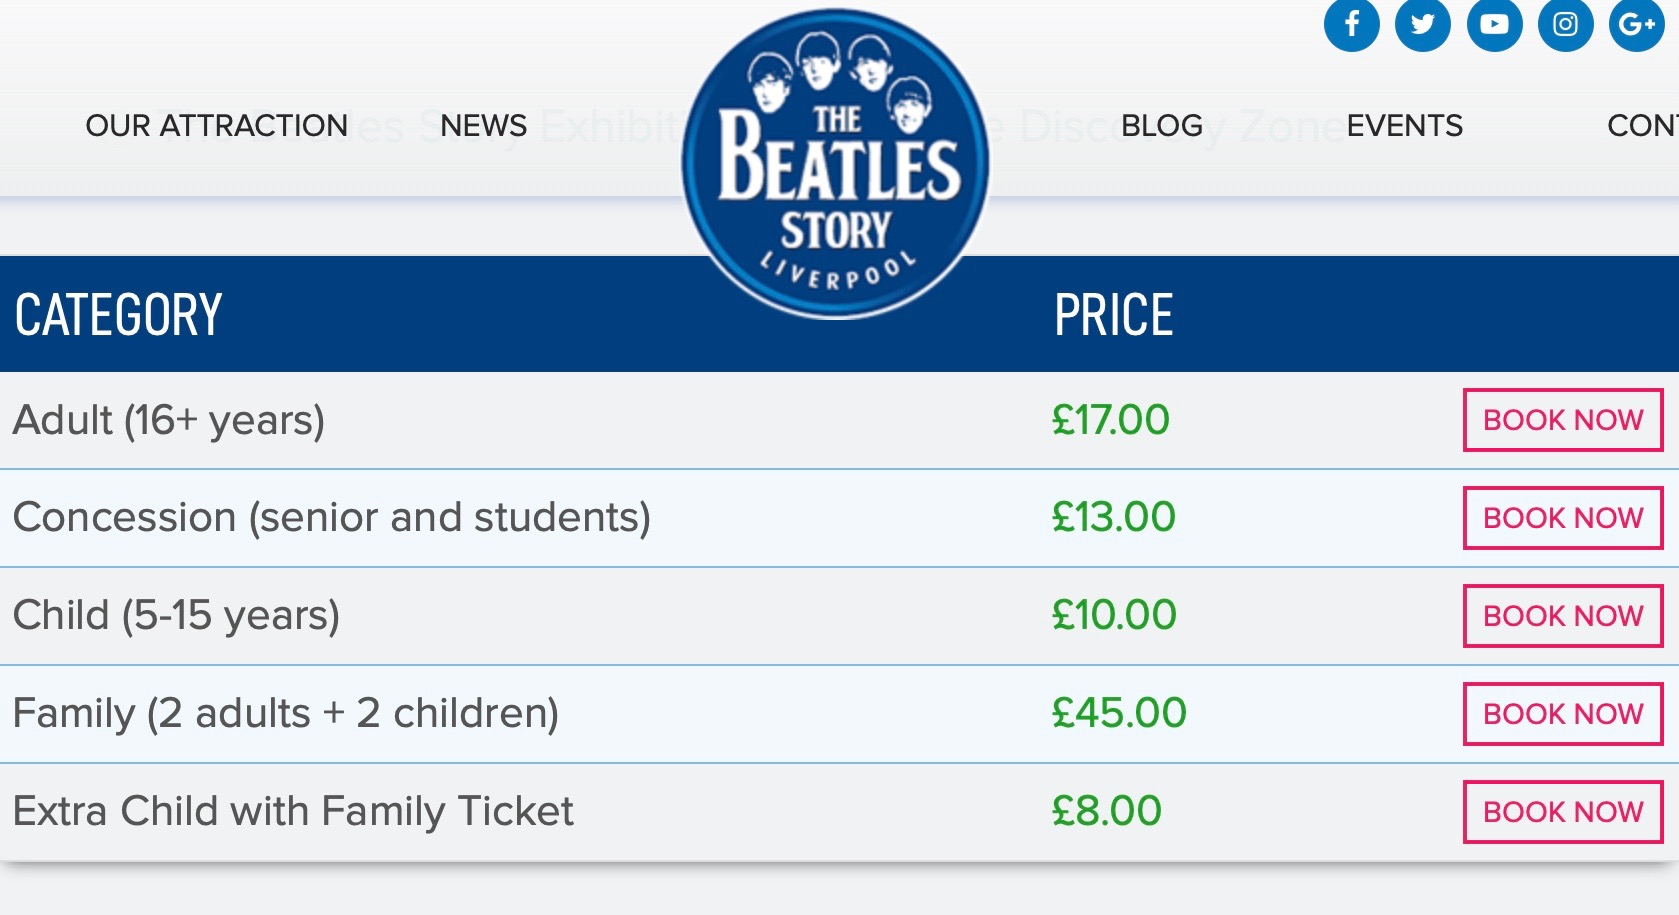 Entrance prices at Beatles Story Museum Liverpool.